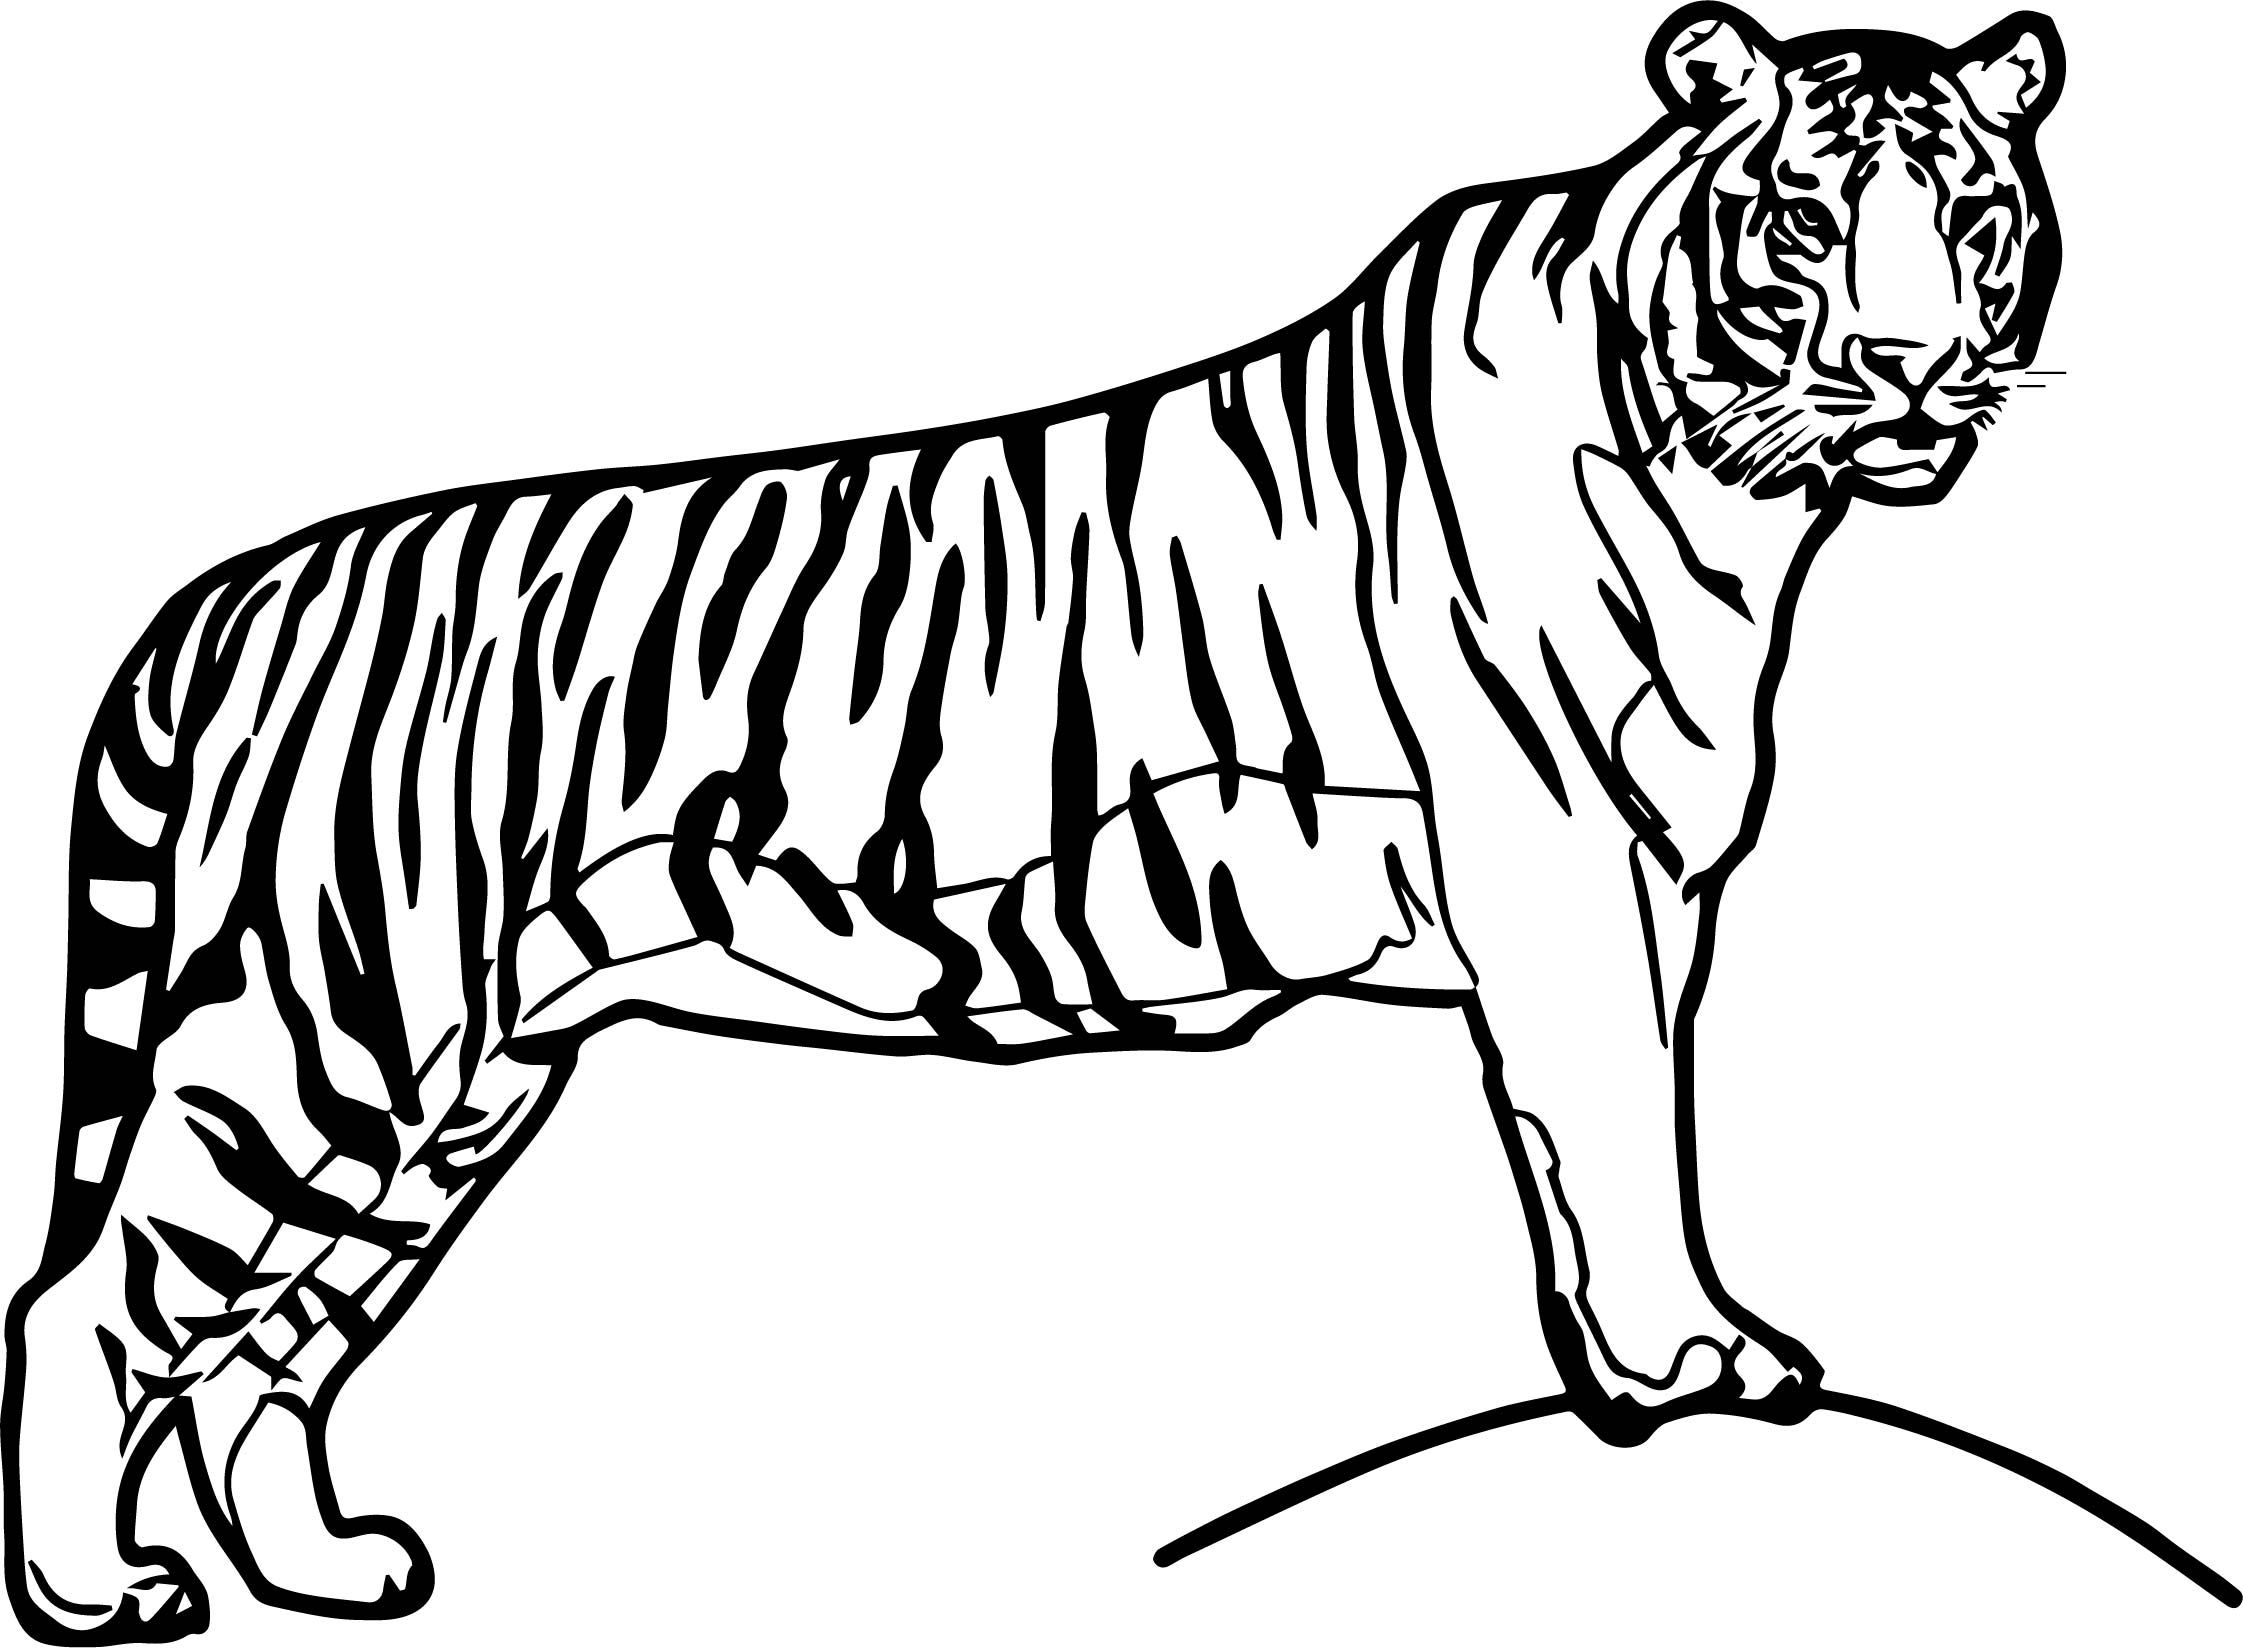 cool tiger coloring pages tigers coloring pages coloring kids coloring kids pages coloring cool tiger